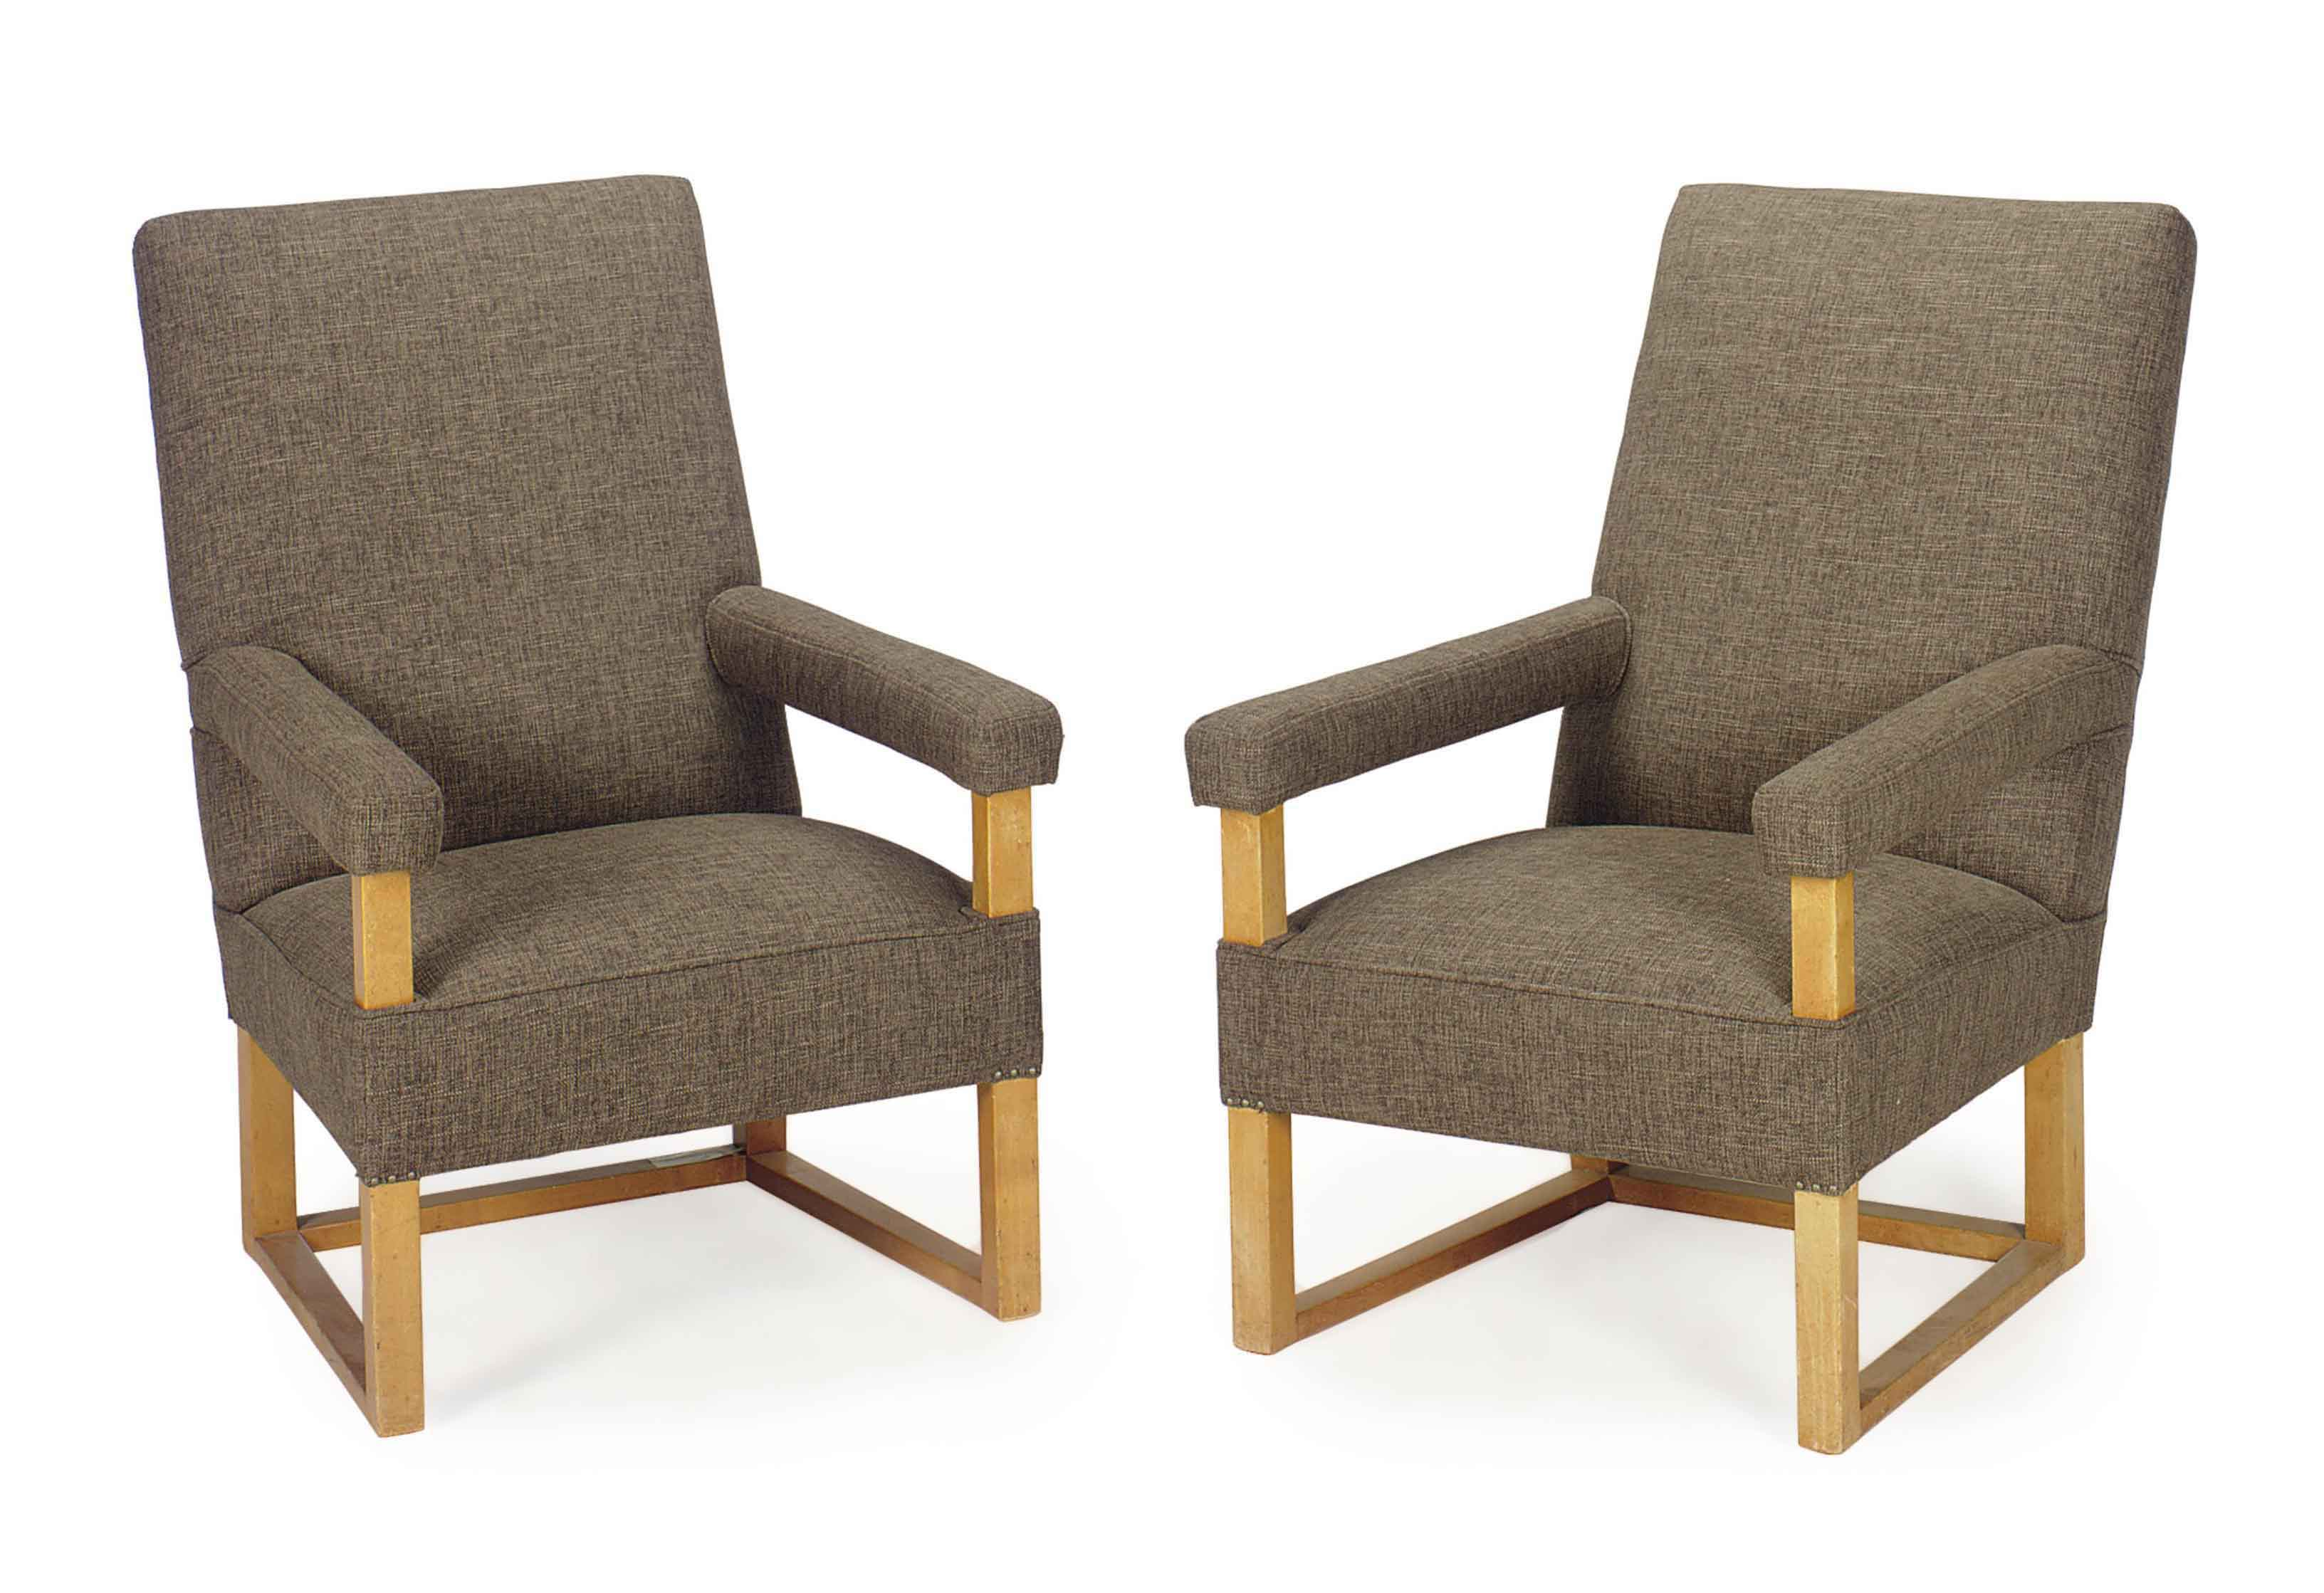 A PAIR OF FRENCH OAK AND GREY UPHOLSTERED FAUTEUILS,